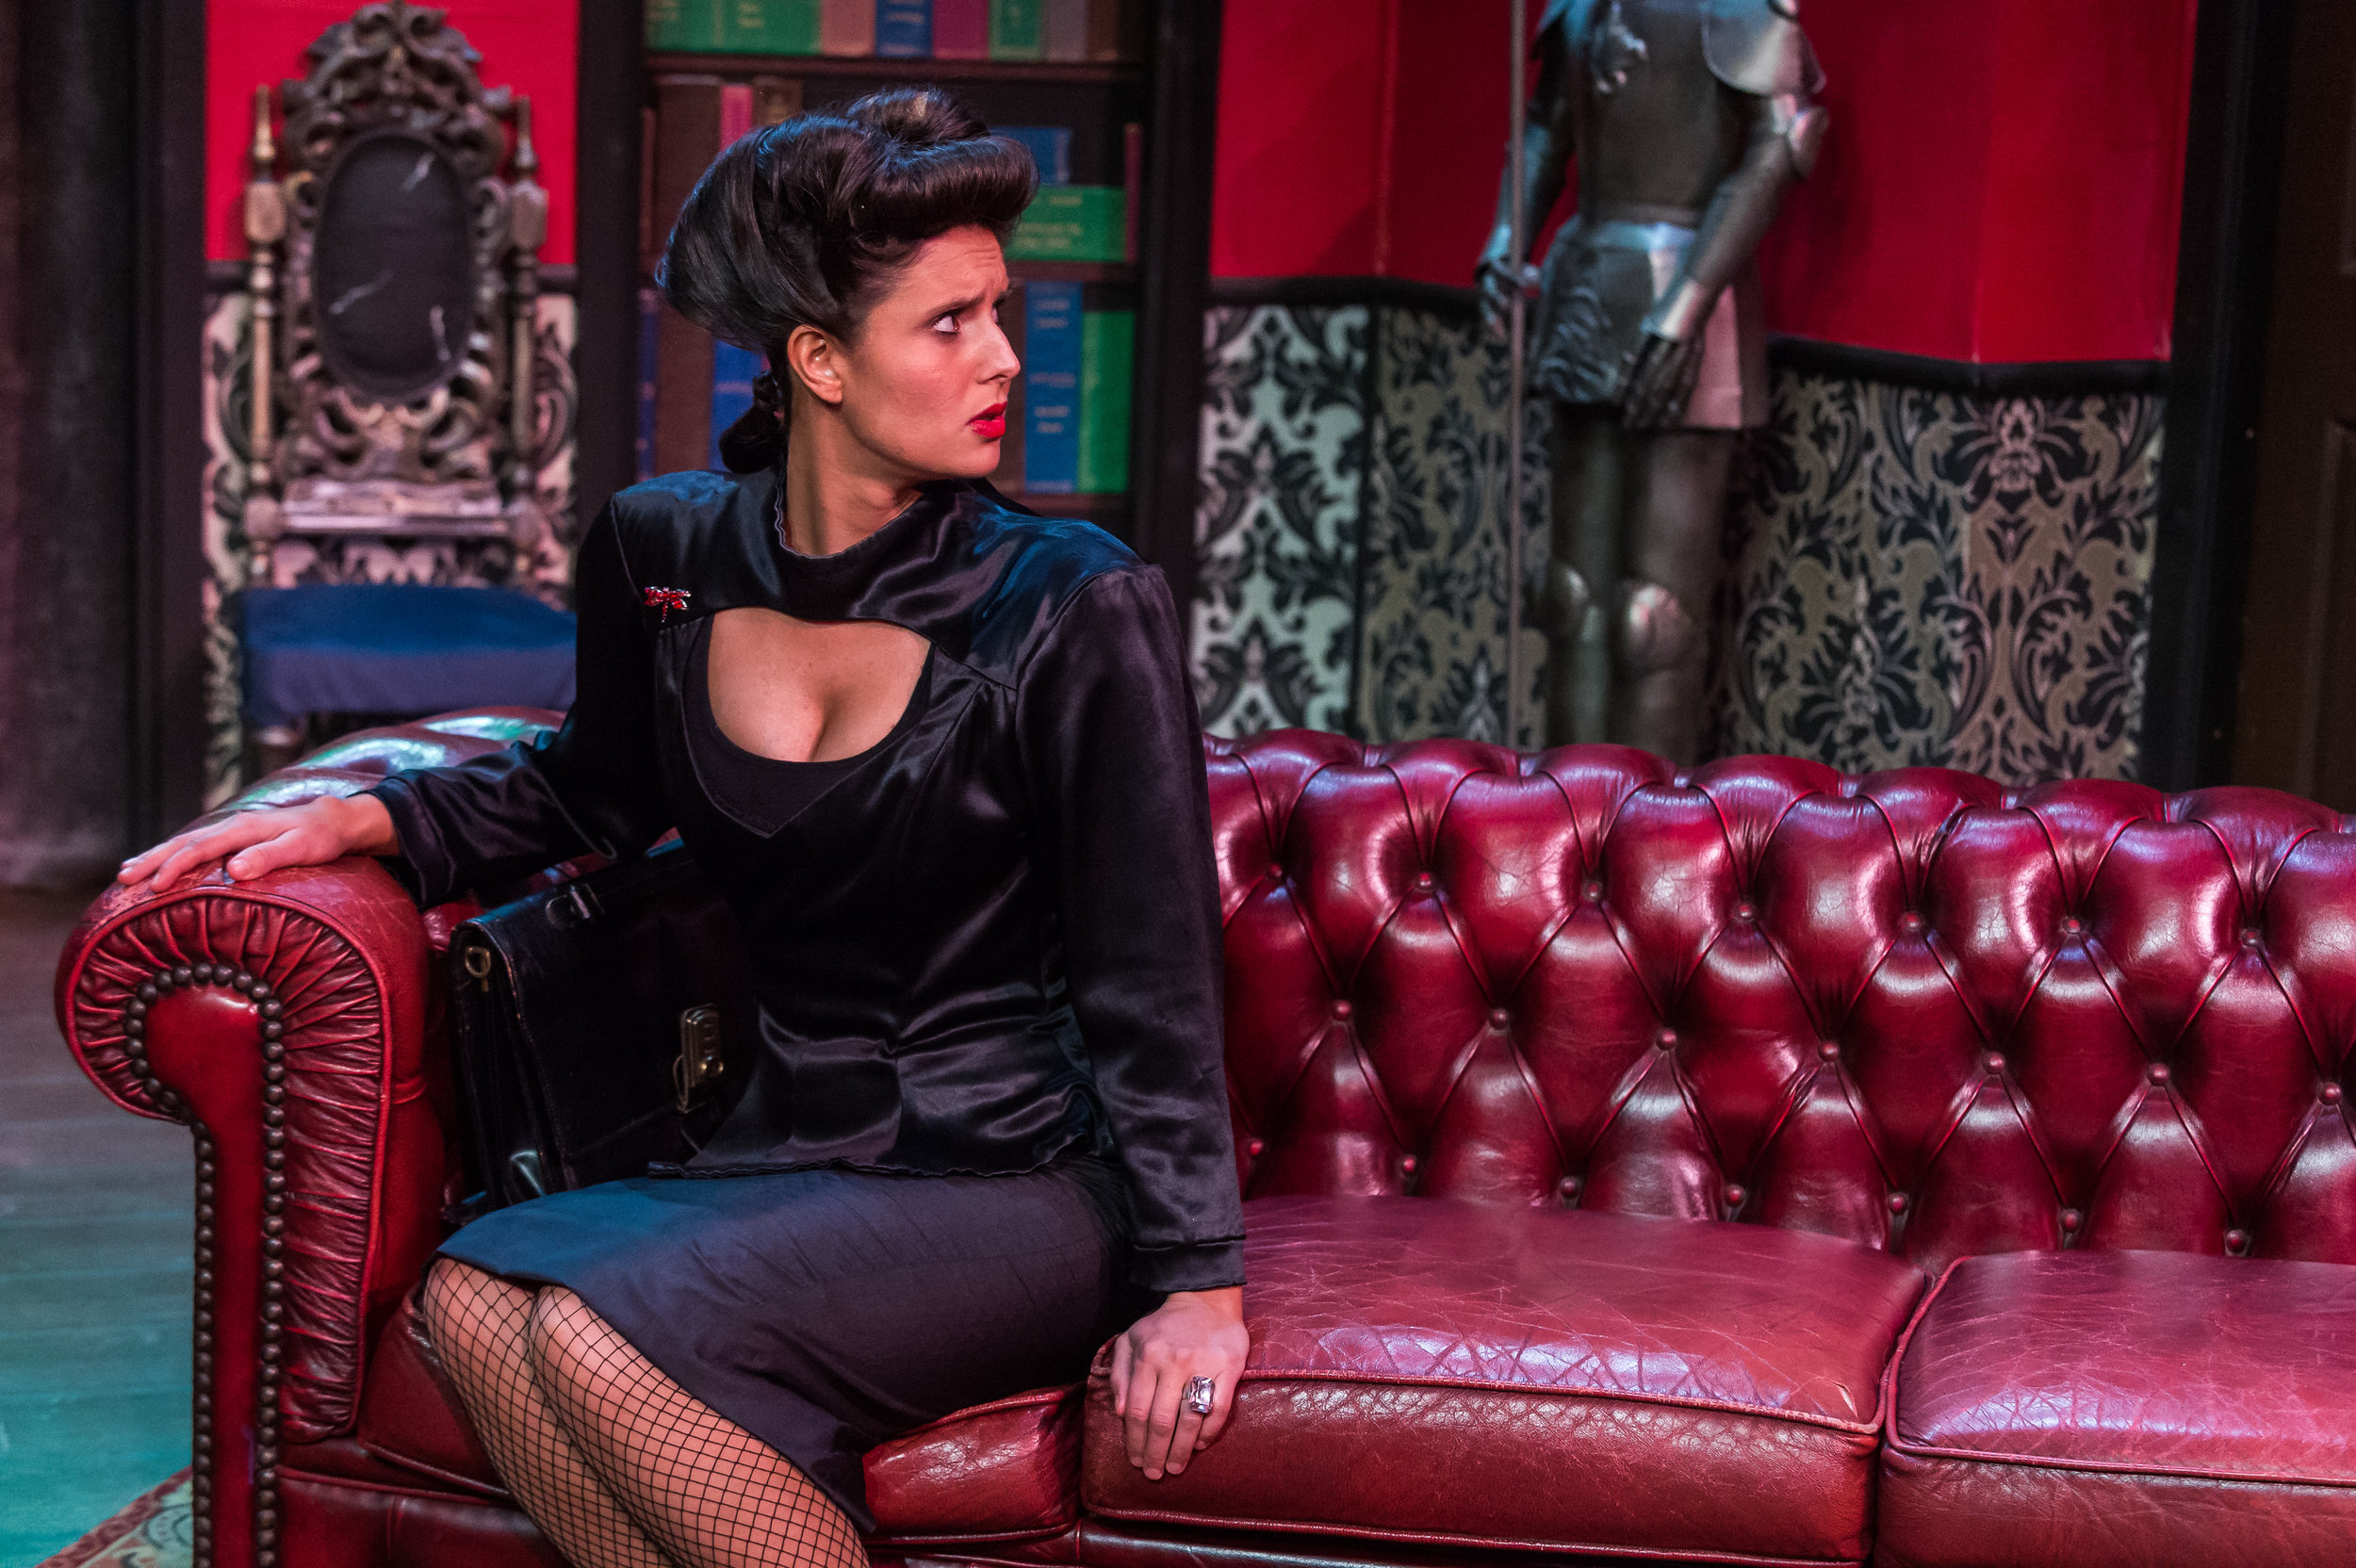 Wanted One Body - Impressive - 19th November 2017                                  Actor, Samantha Camilleri plays Anne Beale in CHP's murder comedy thriller now showing at The Pavilion.